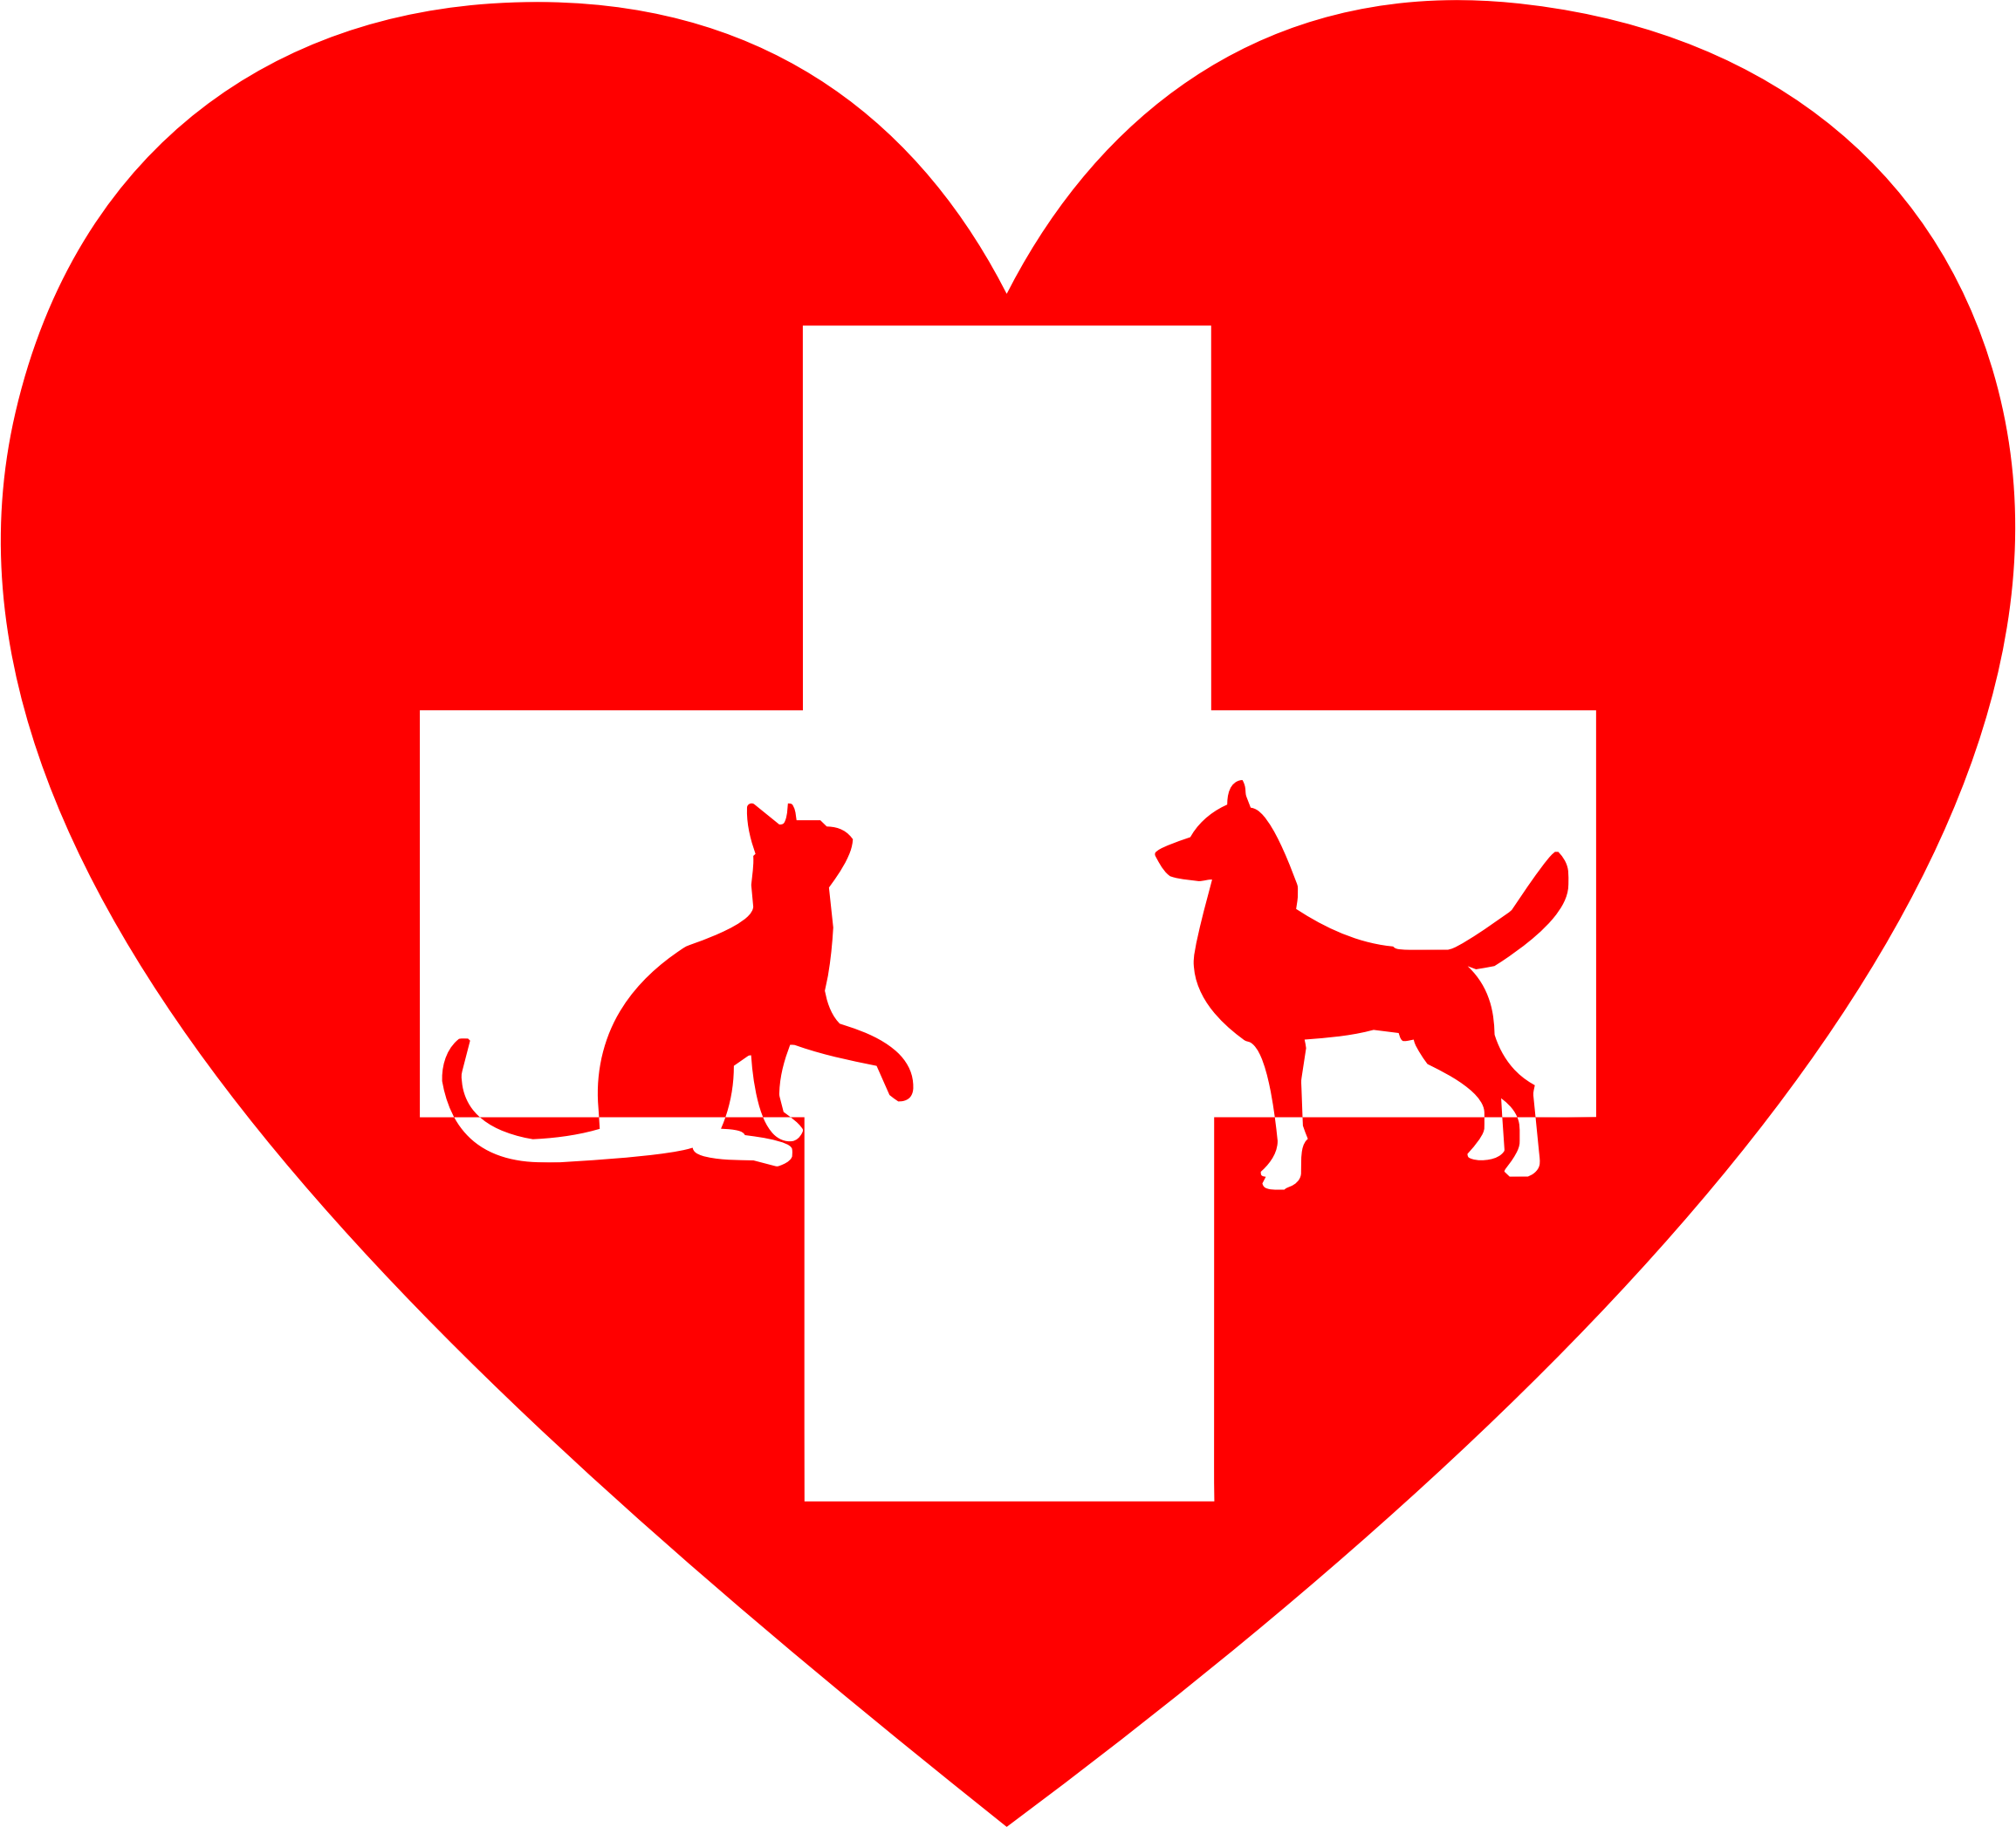 clipart free library Veterinary first aid heart. Veterinarian clipart